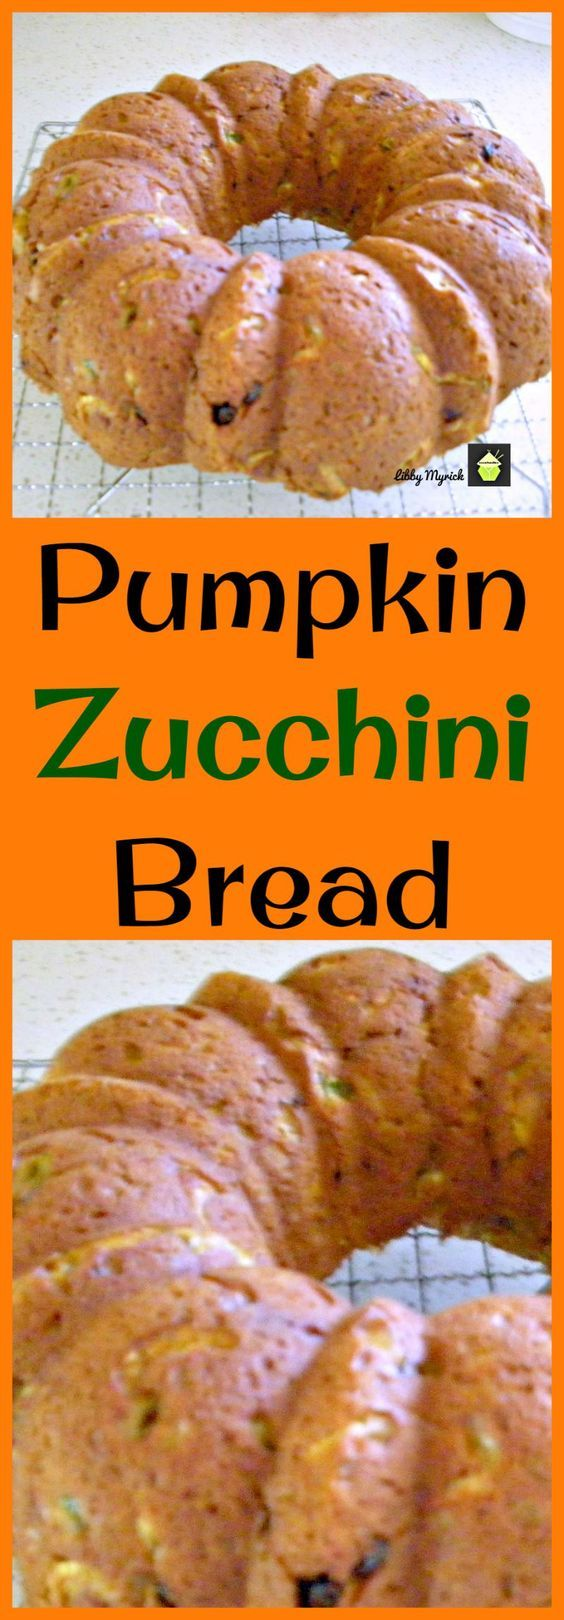 Pumpkin Zucchini Bread, An easy recipe with fabulous aromas and great tasting. Freezer friendly and a perfect way to enjoy zucchini!   Lovefoodies.com